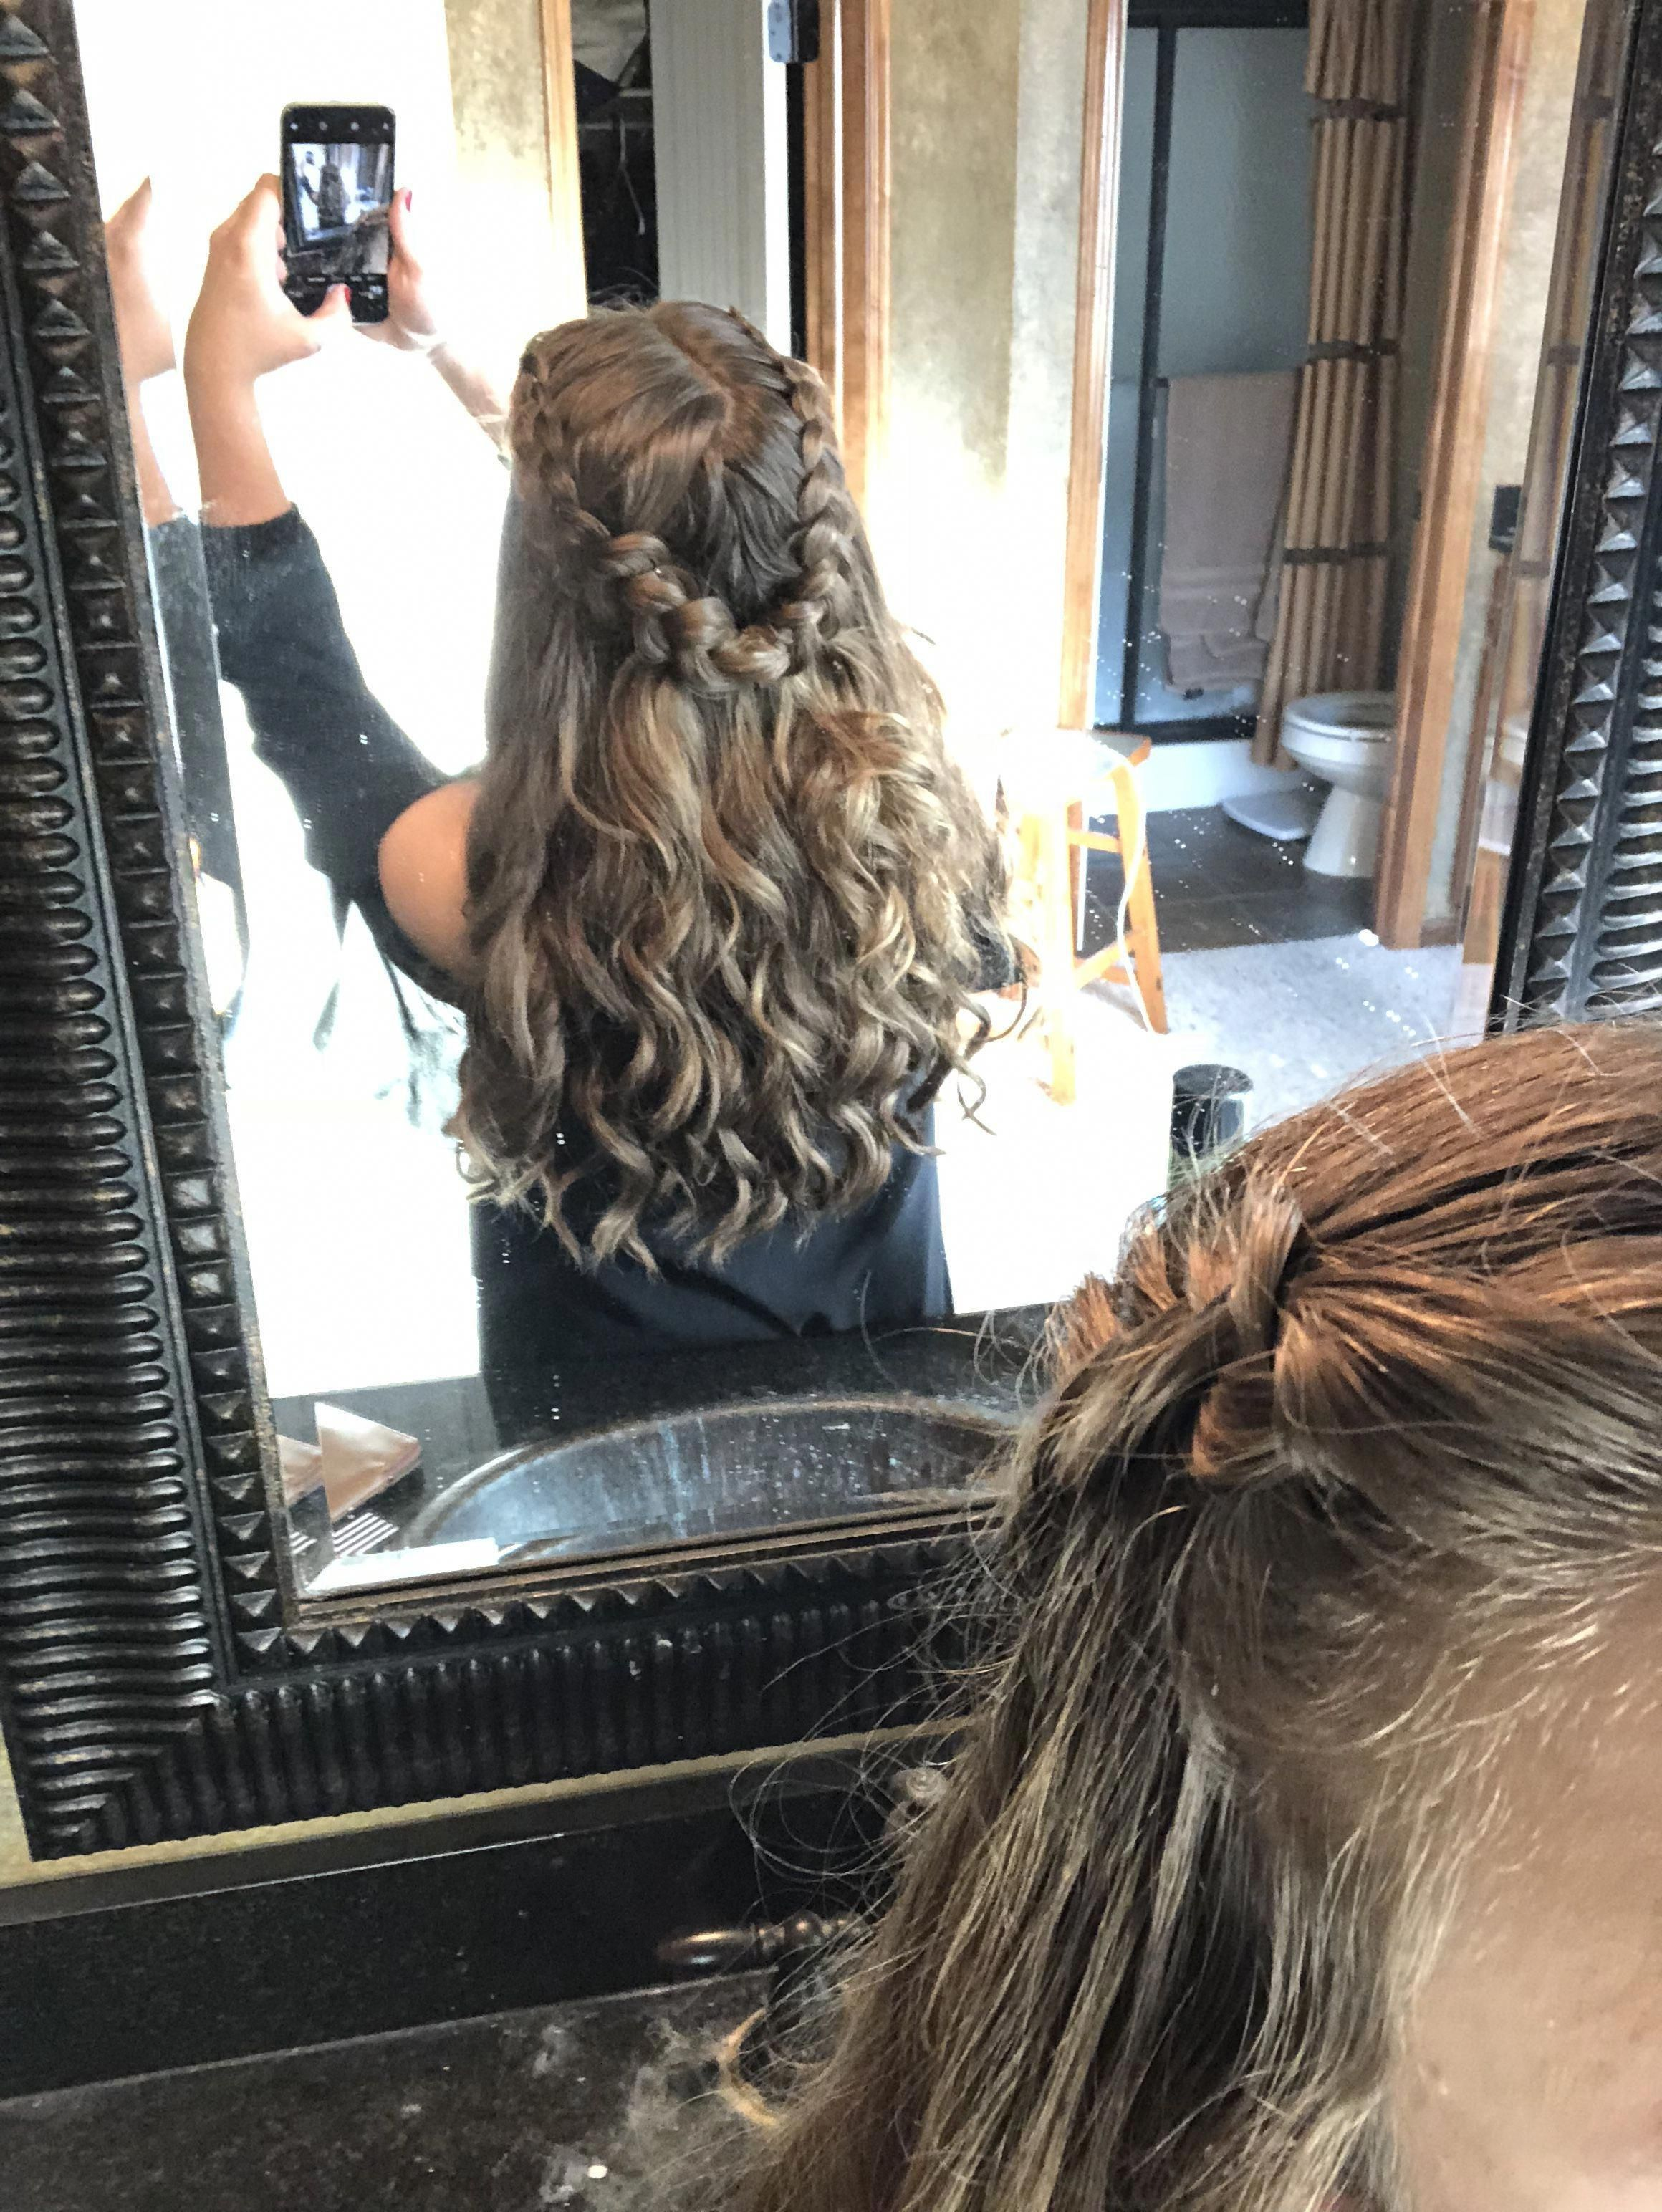 Homecoming High School Dance Hairstyles Braided Curly Wedding Hairstyles For School Curly Heat In 2020 Dance Hairstyles Homecoming Hairstyles High School Hairstyles